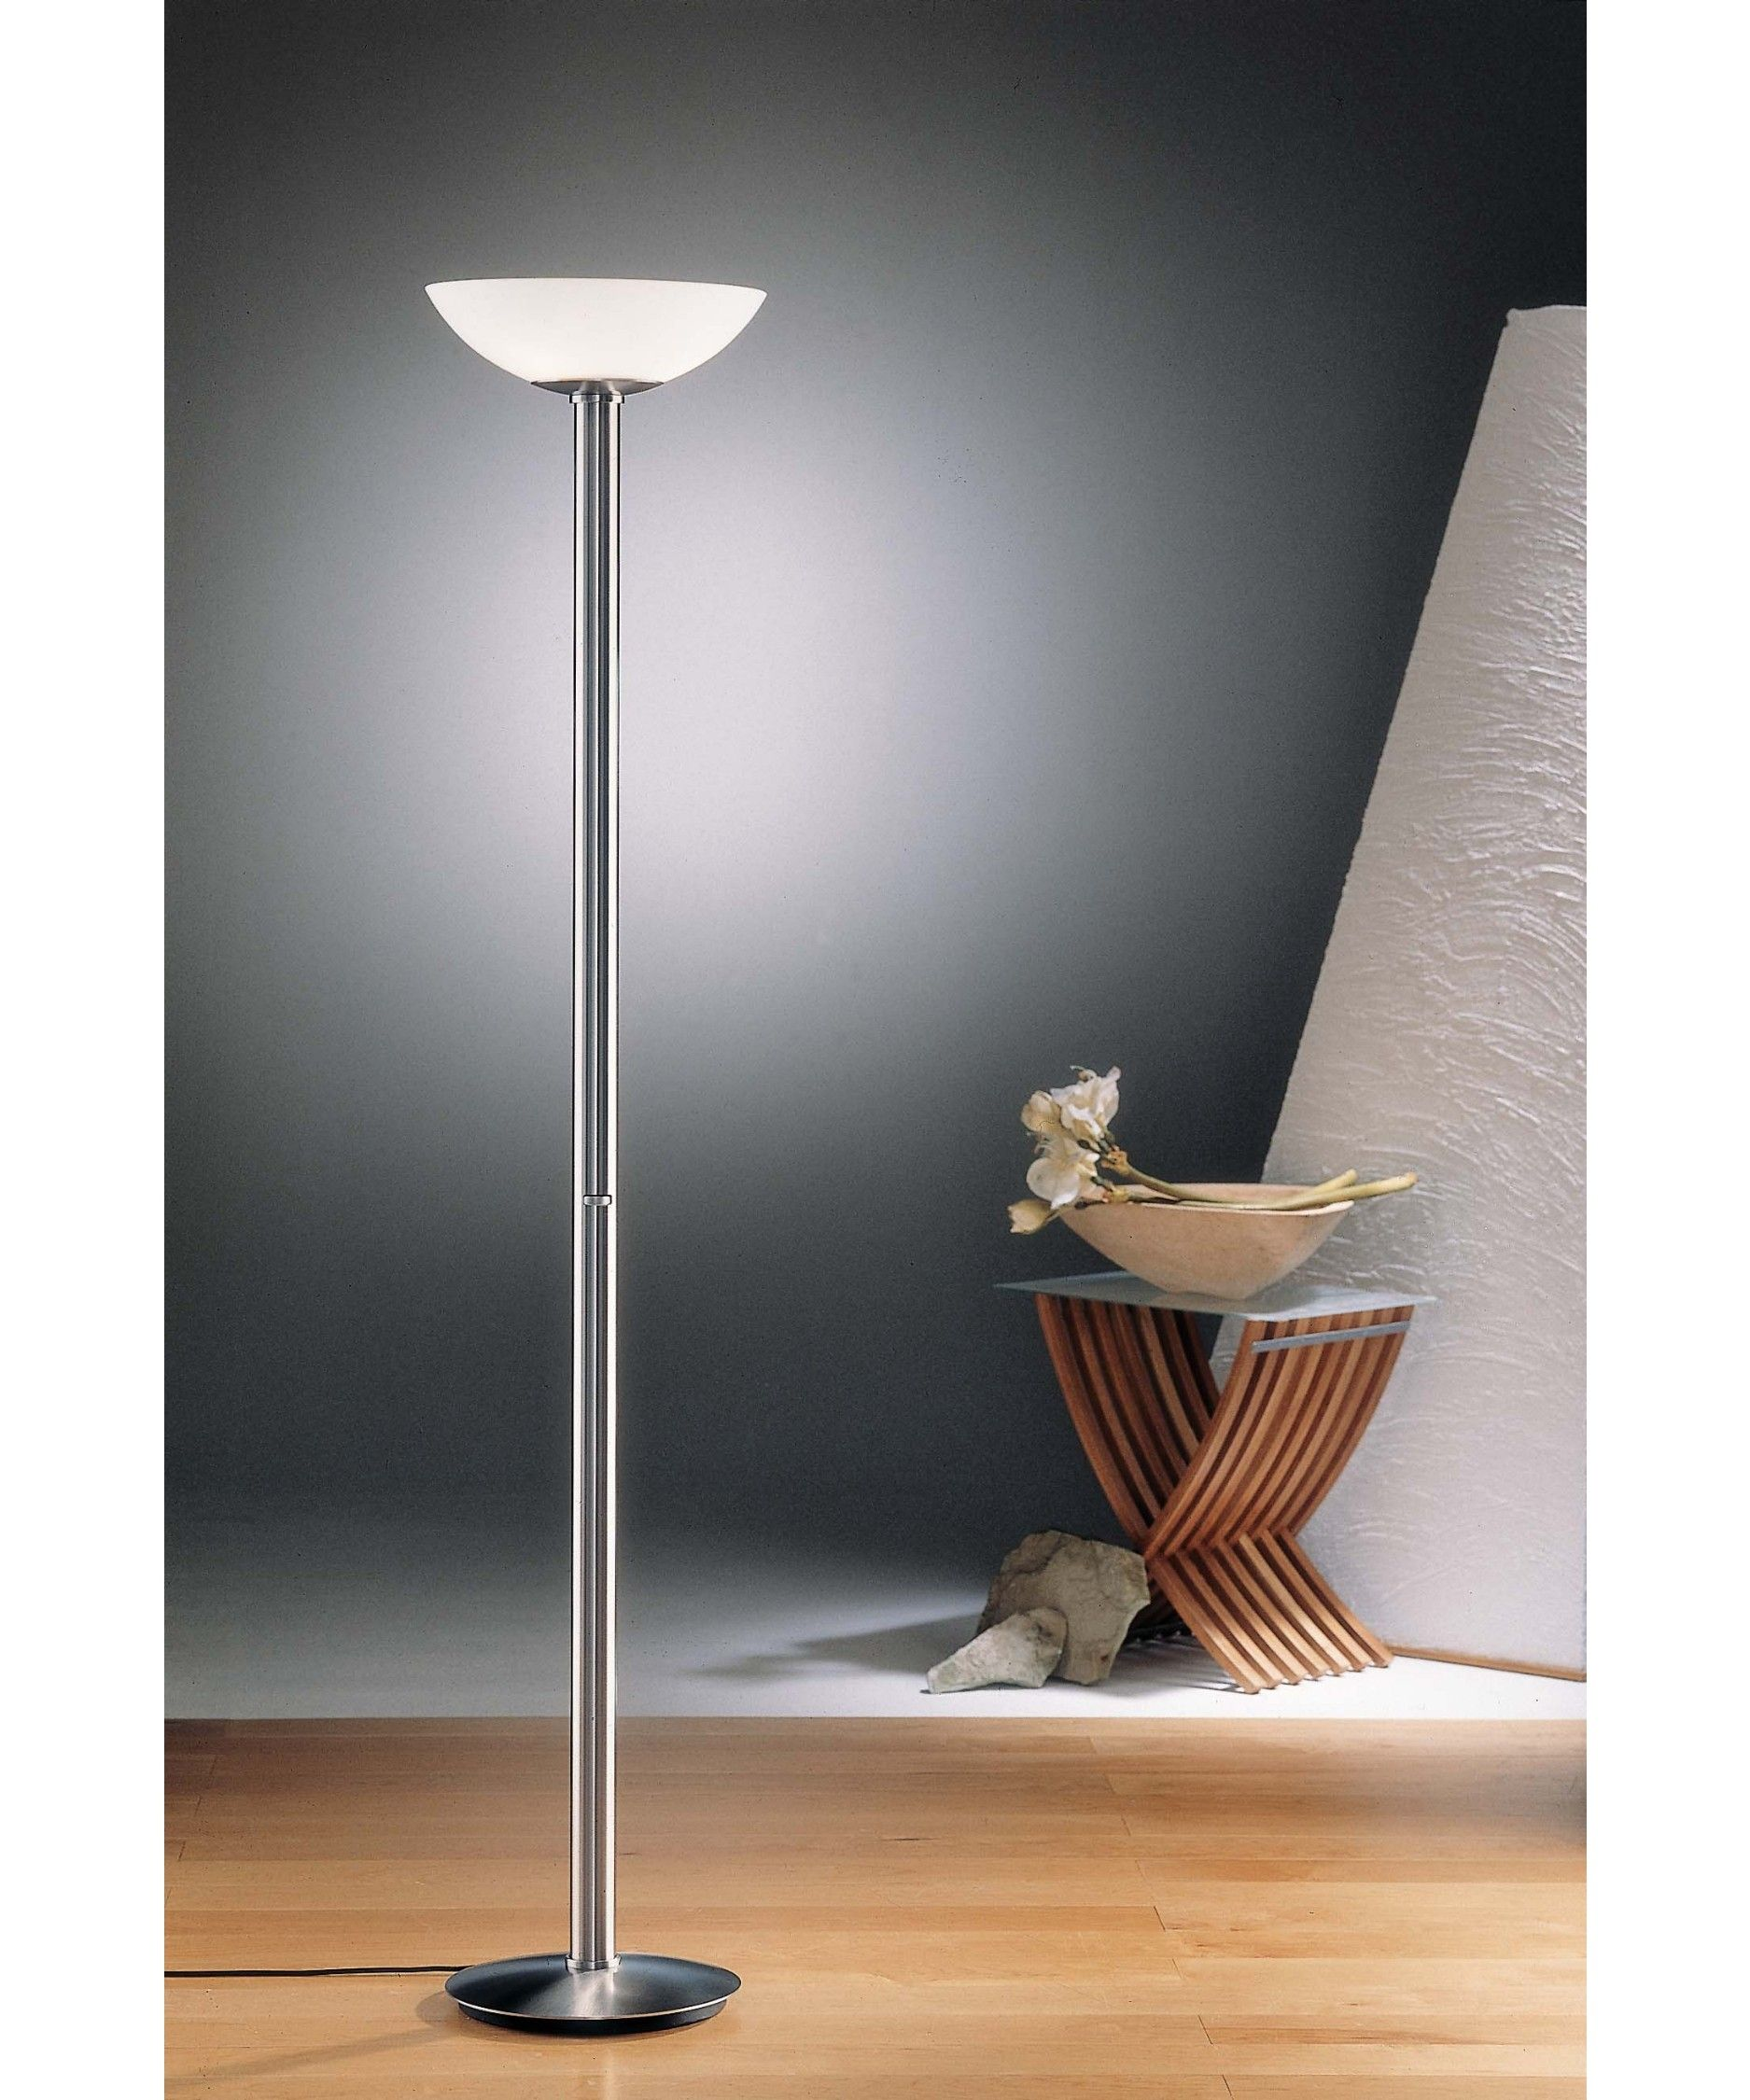 Halogen Stehlampe Halogen Floor Lamp Torchiere Floor Lamp Lamp